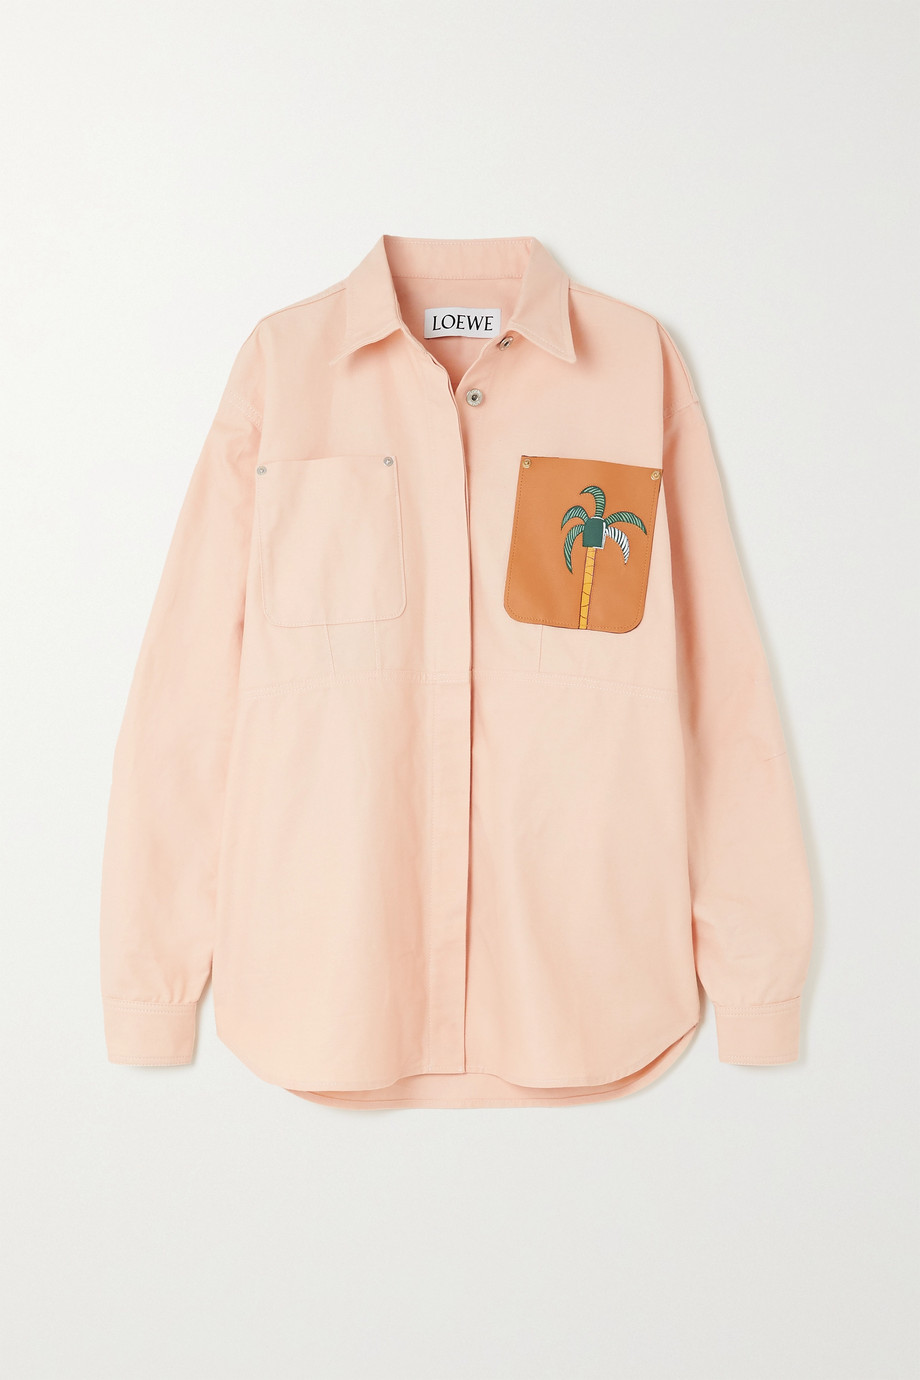 Loewe + Ken Price La Palme leather-trimmed denim shirt